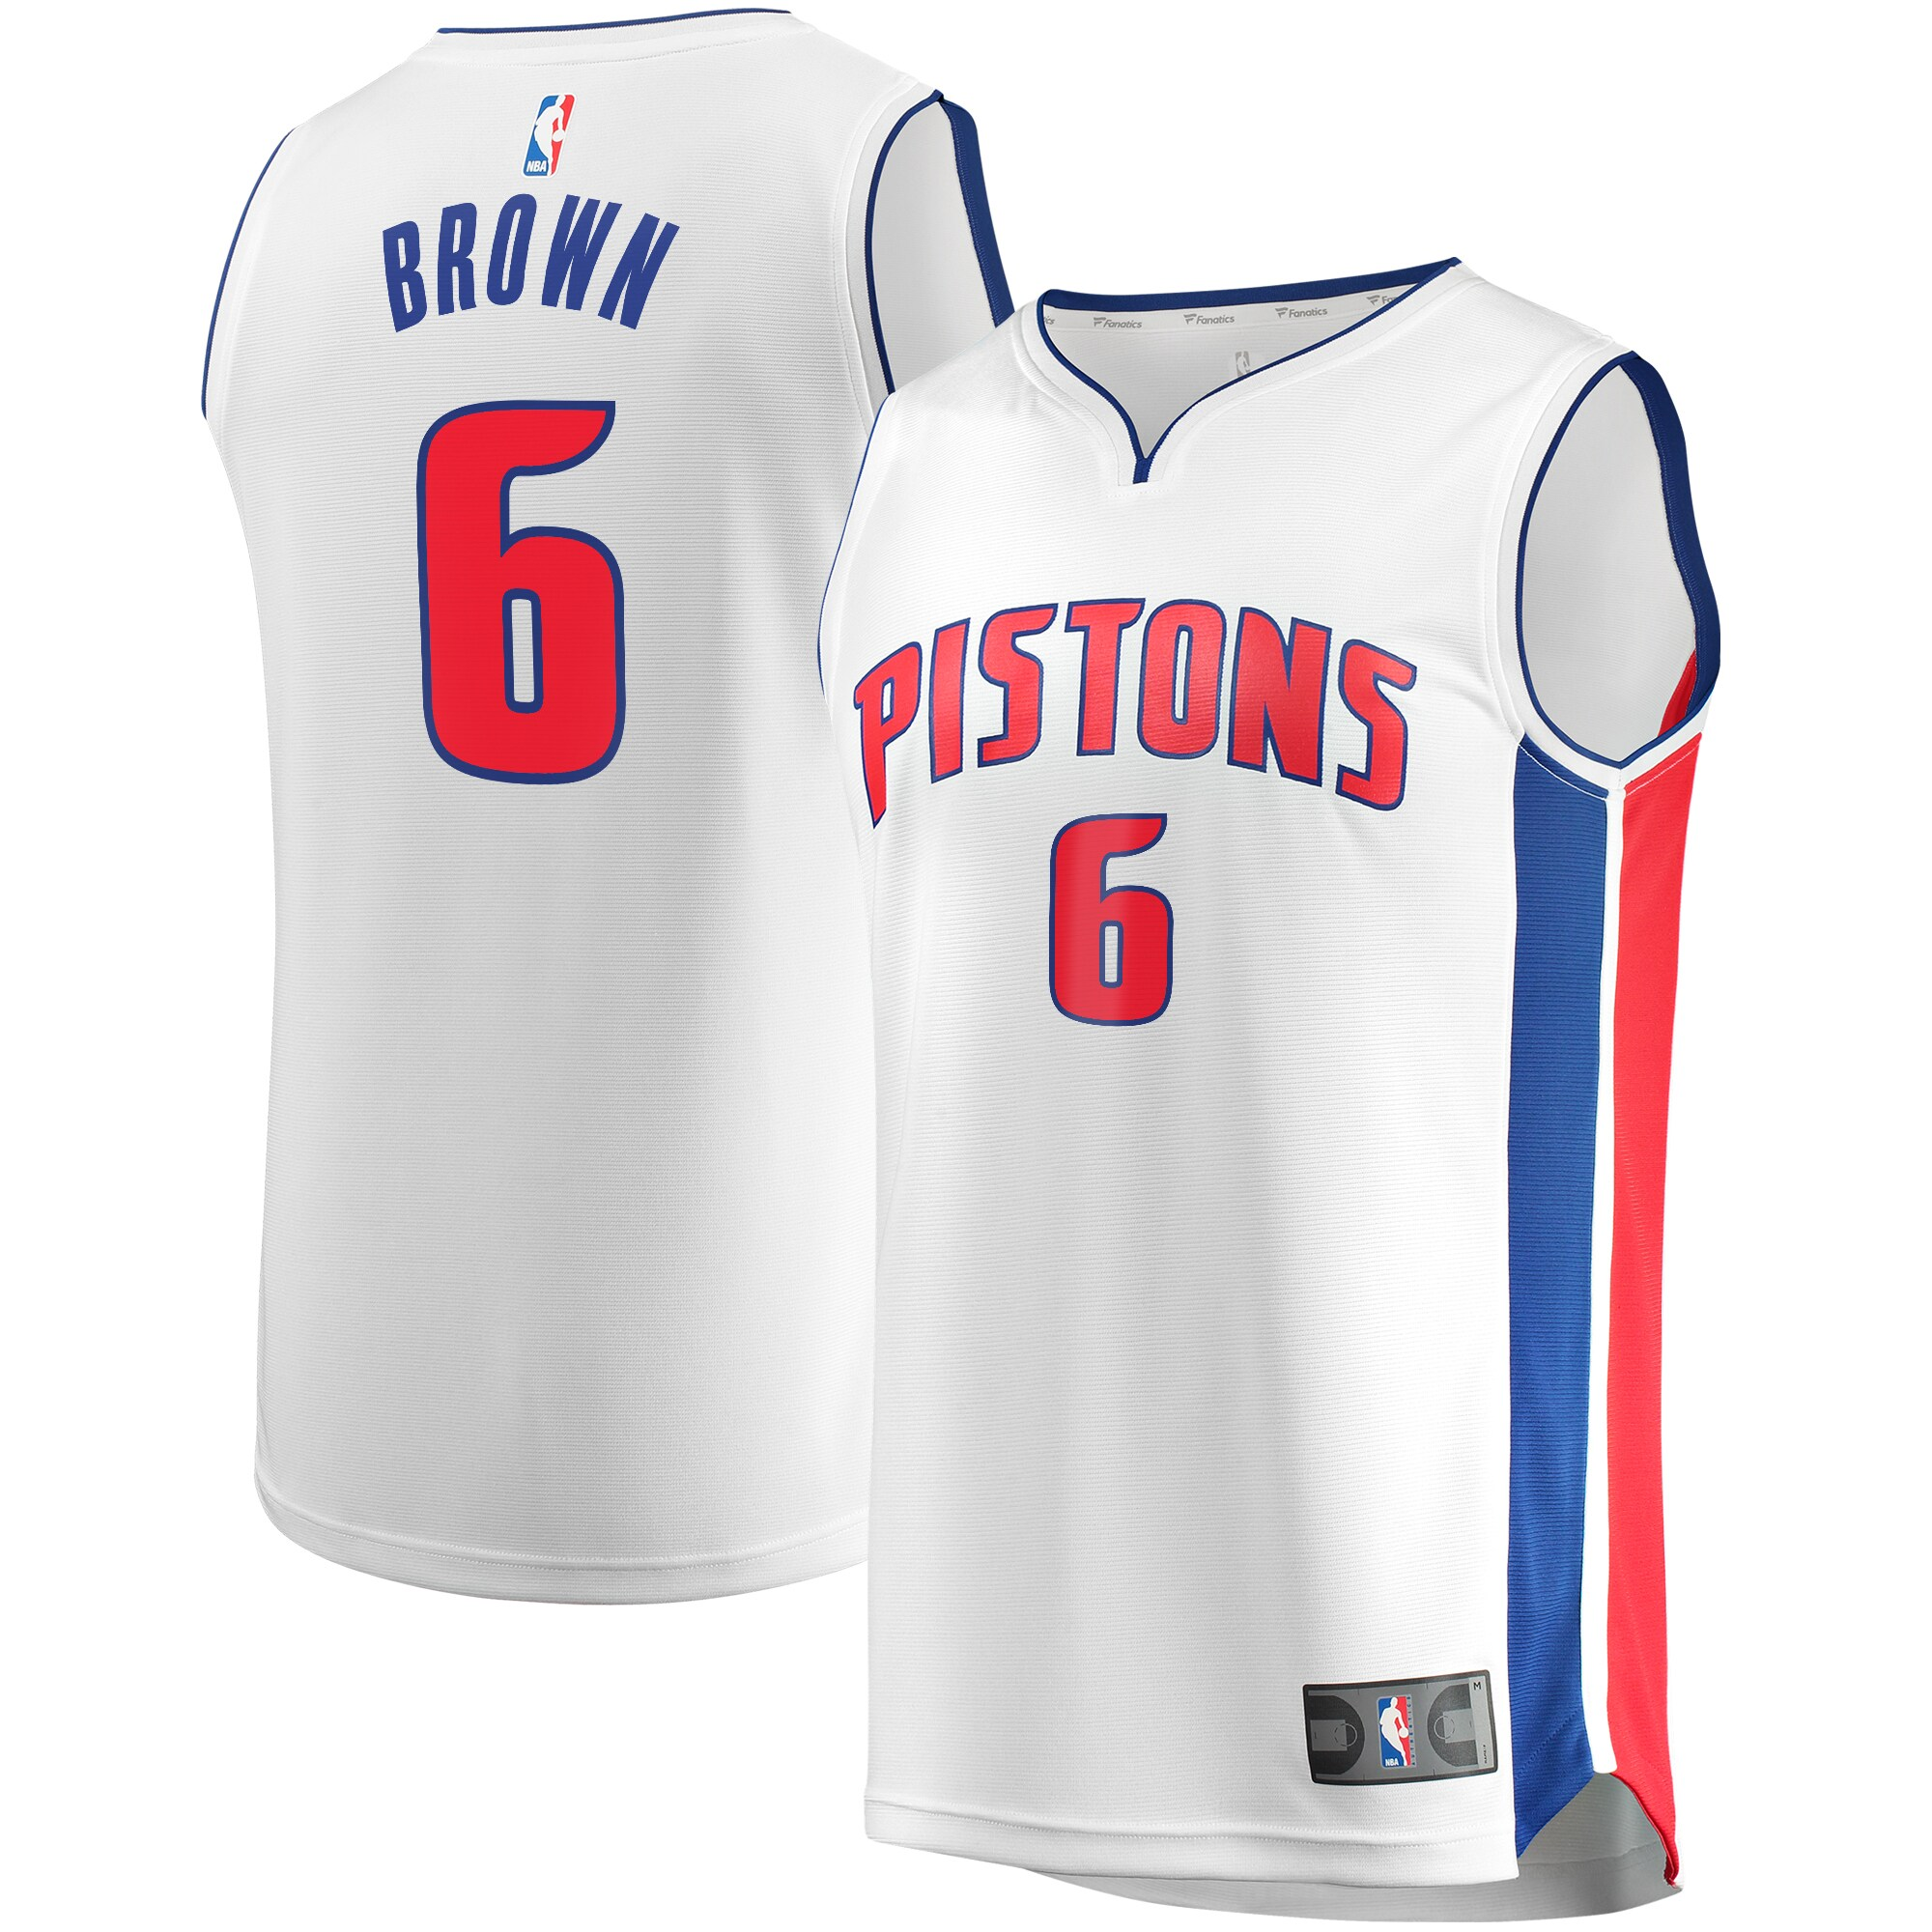 Bruce Brown Detroit Pistons Fanatics Branded Youth Fast Break Replica Player Jersey - Association Edition - White